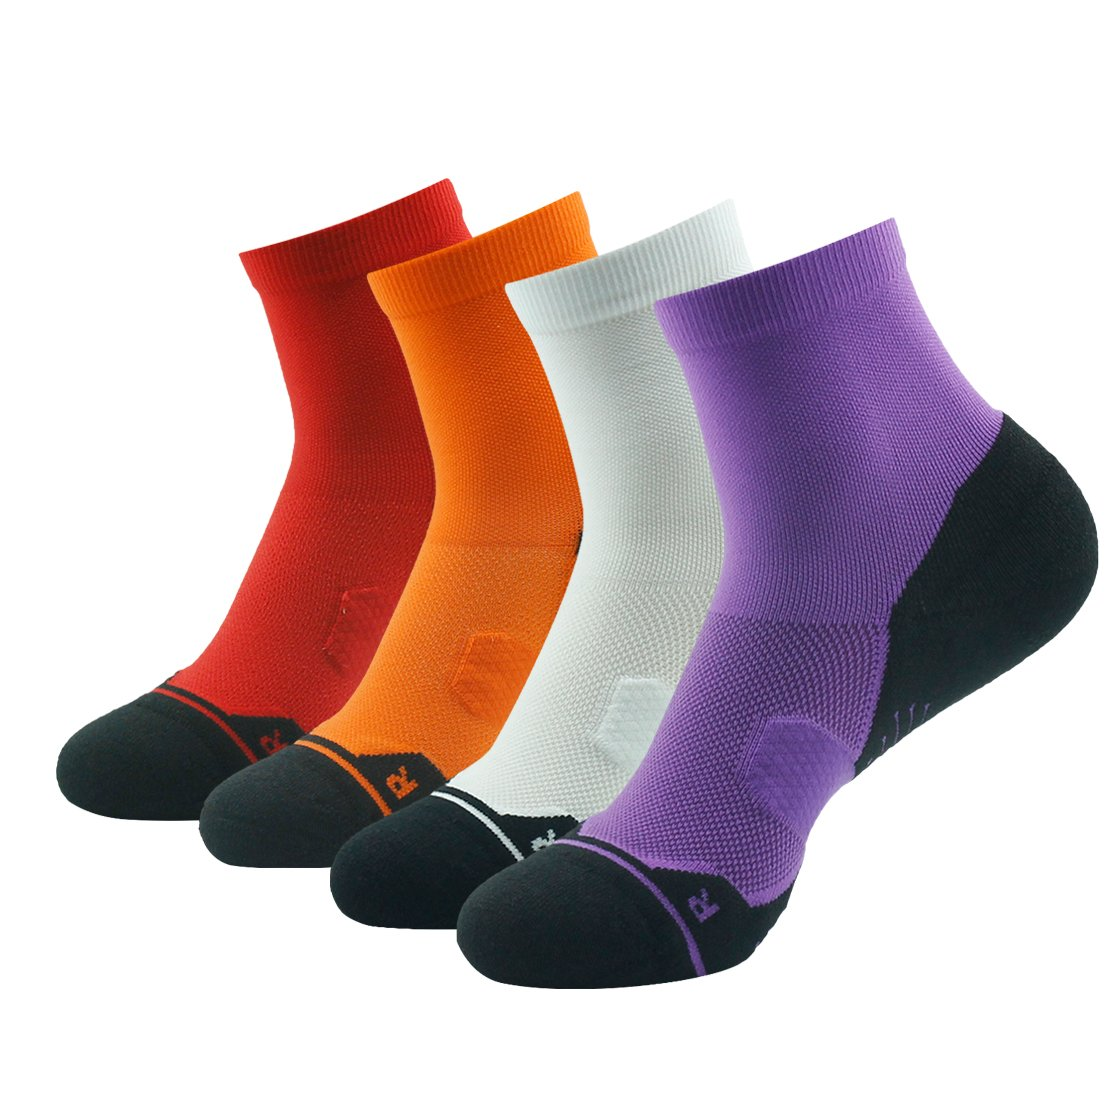 4 Pair Purple&orange&white&red Running Socks Support, HUSO Men Women High Performance Arch Compression Cushioned Quarter Socks 1,2,3,4,6 Pairs